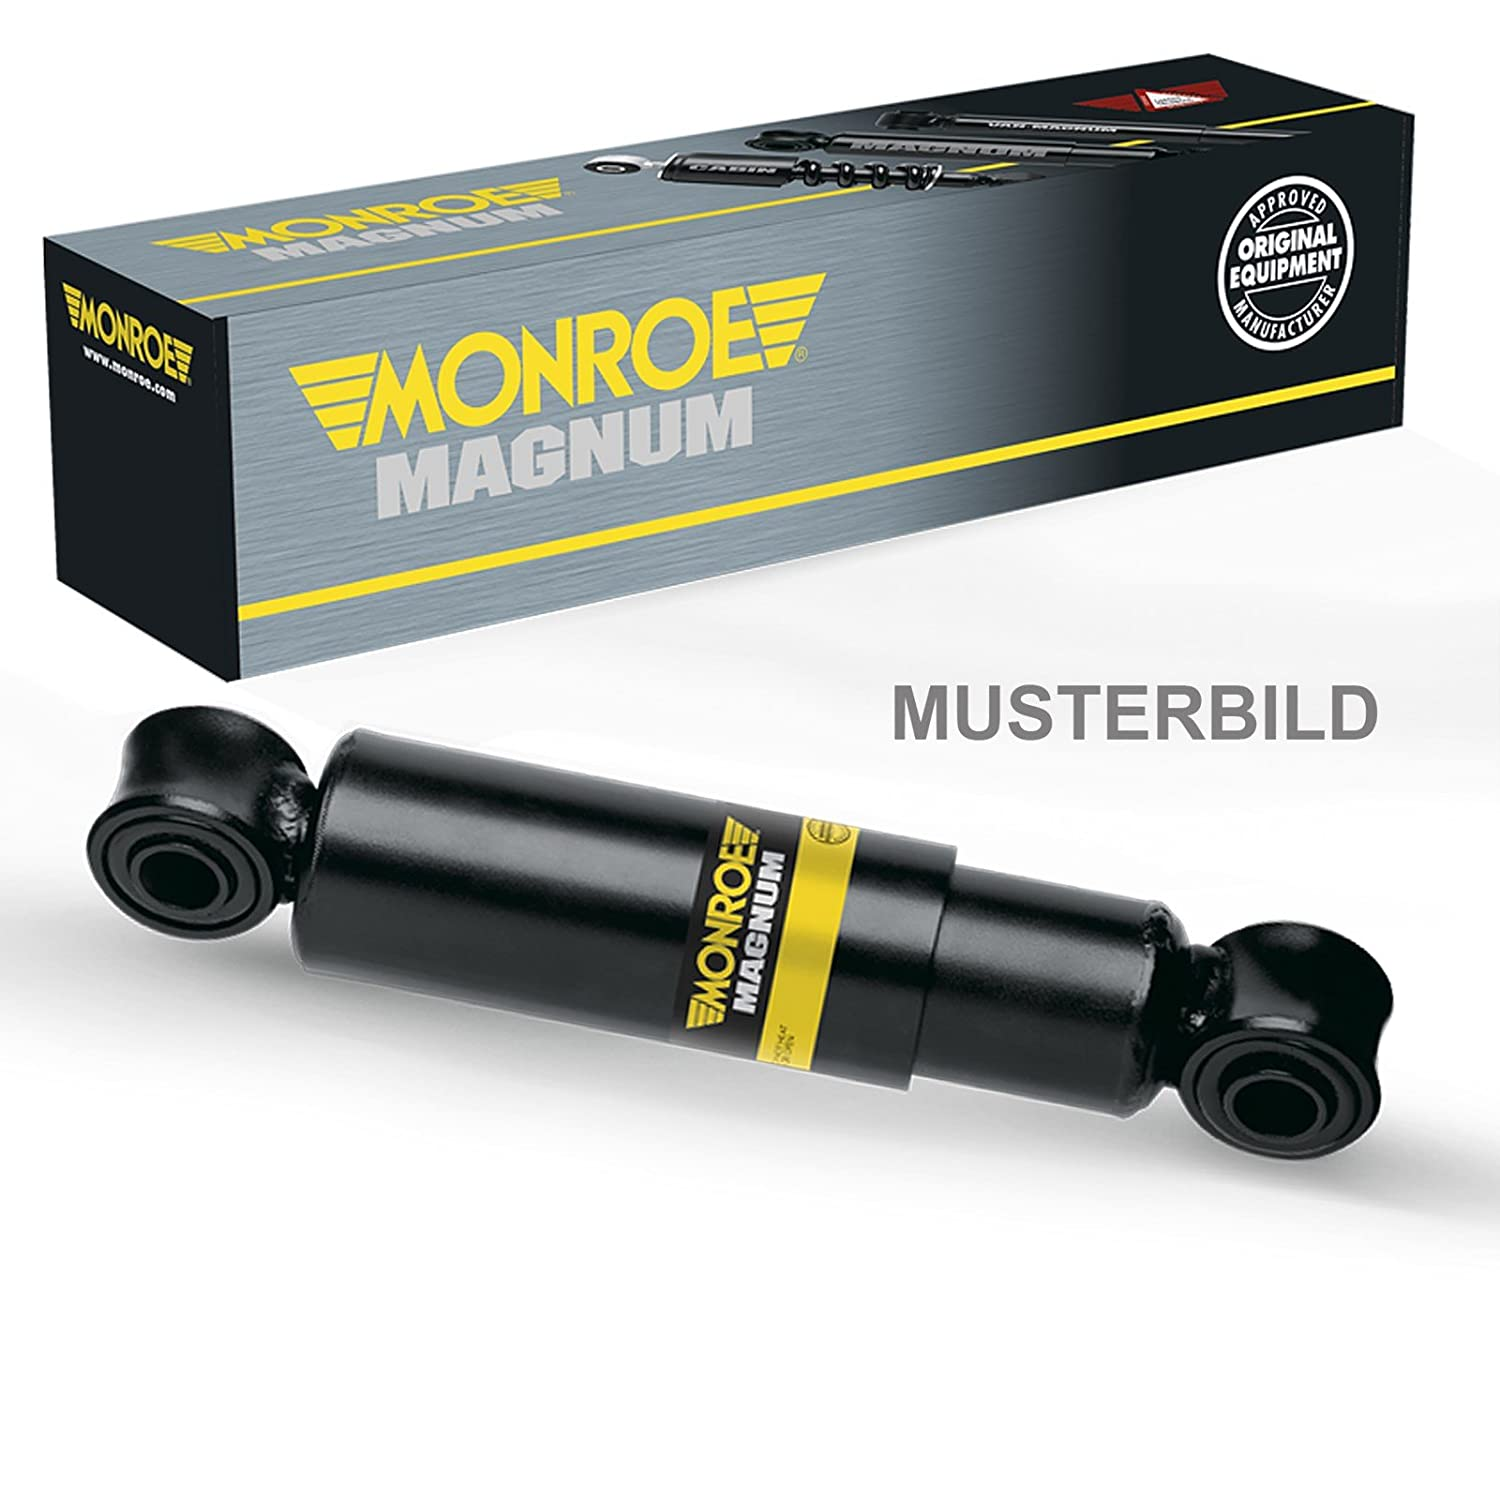 Monroe V5007 Ammortizzatore Tenneco Automotive Europe bvba